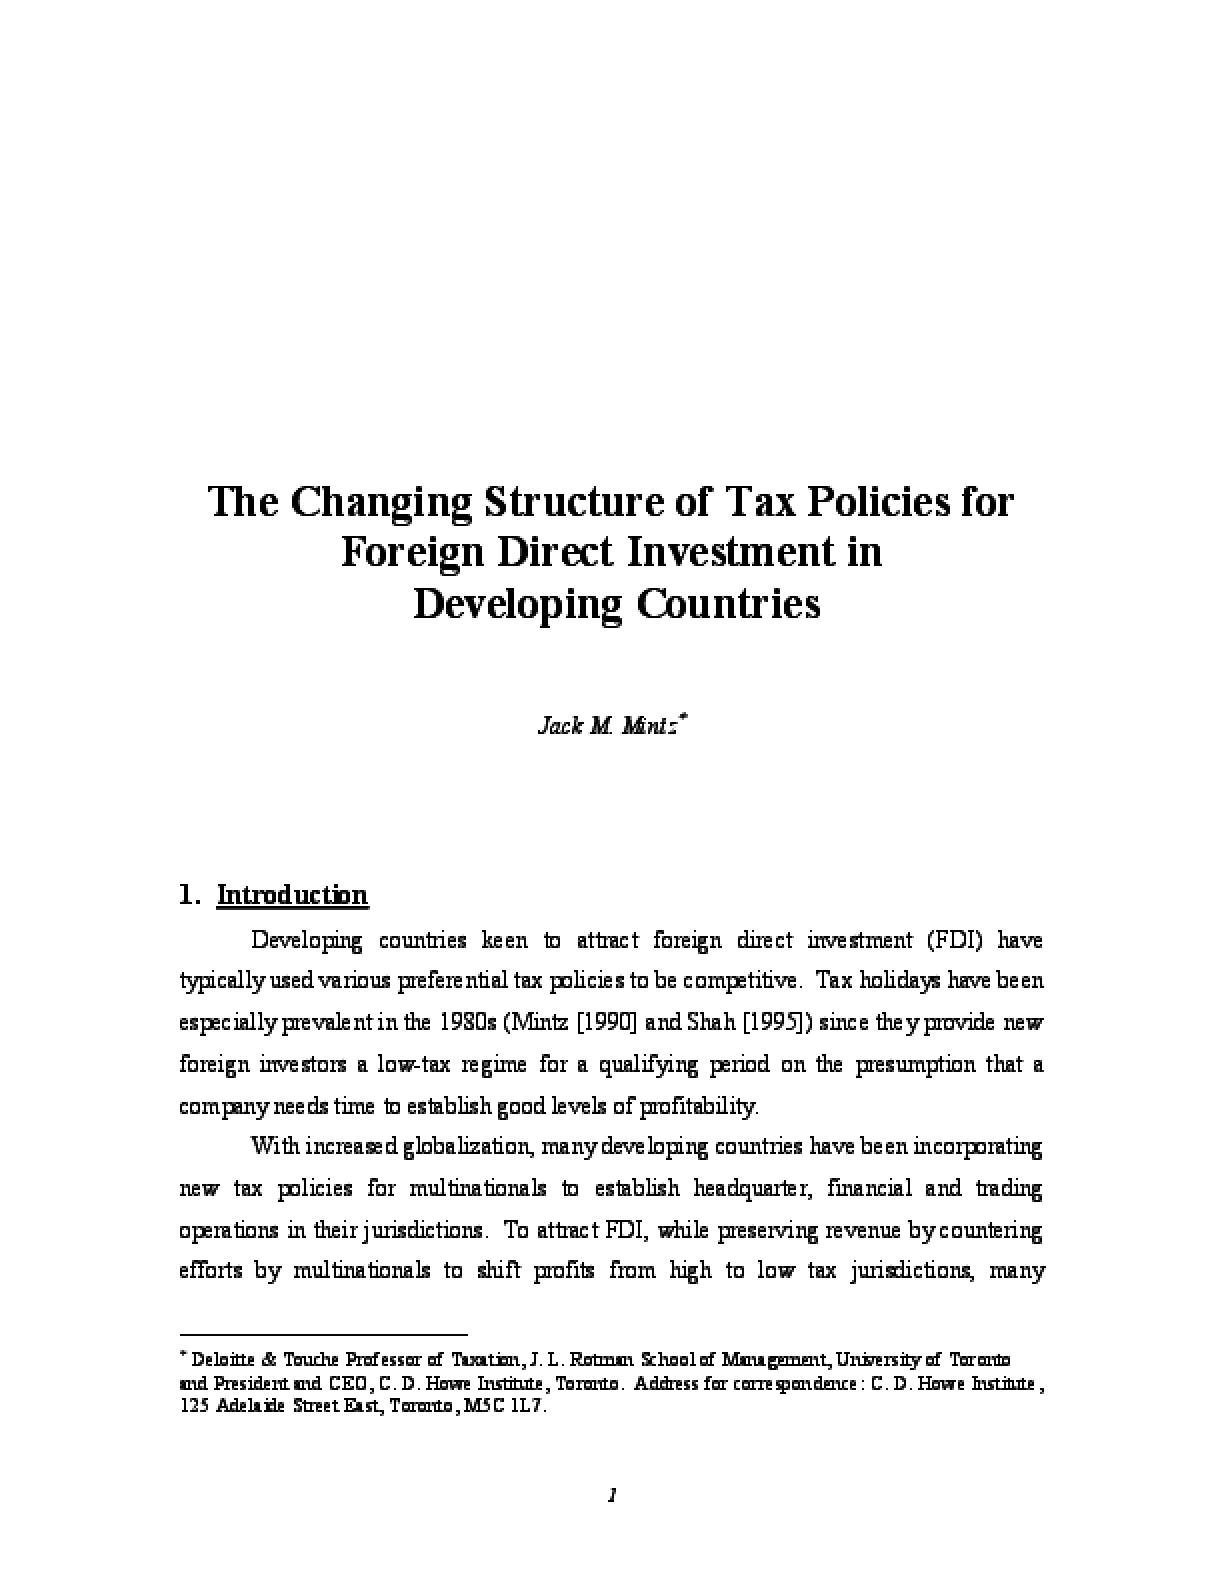 The Changing Structure of Tax Policies for Foreign Direct Investment in Developing Countries